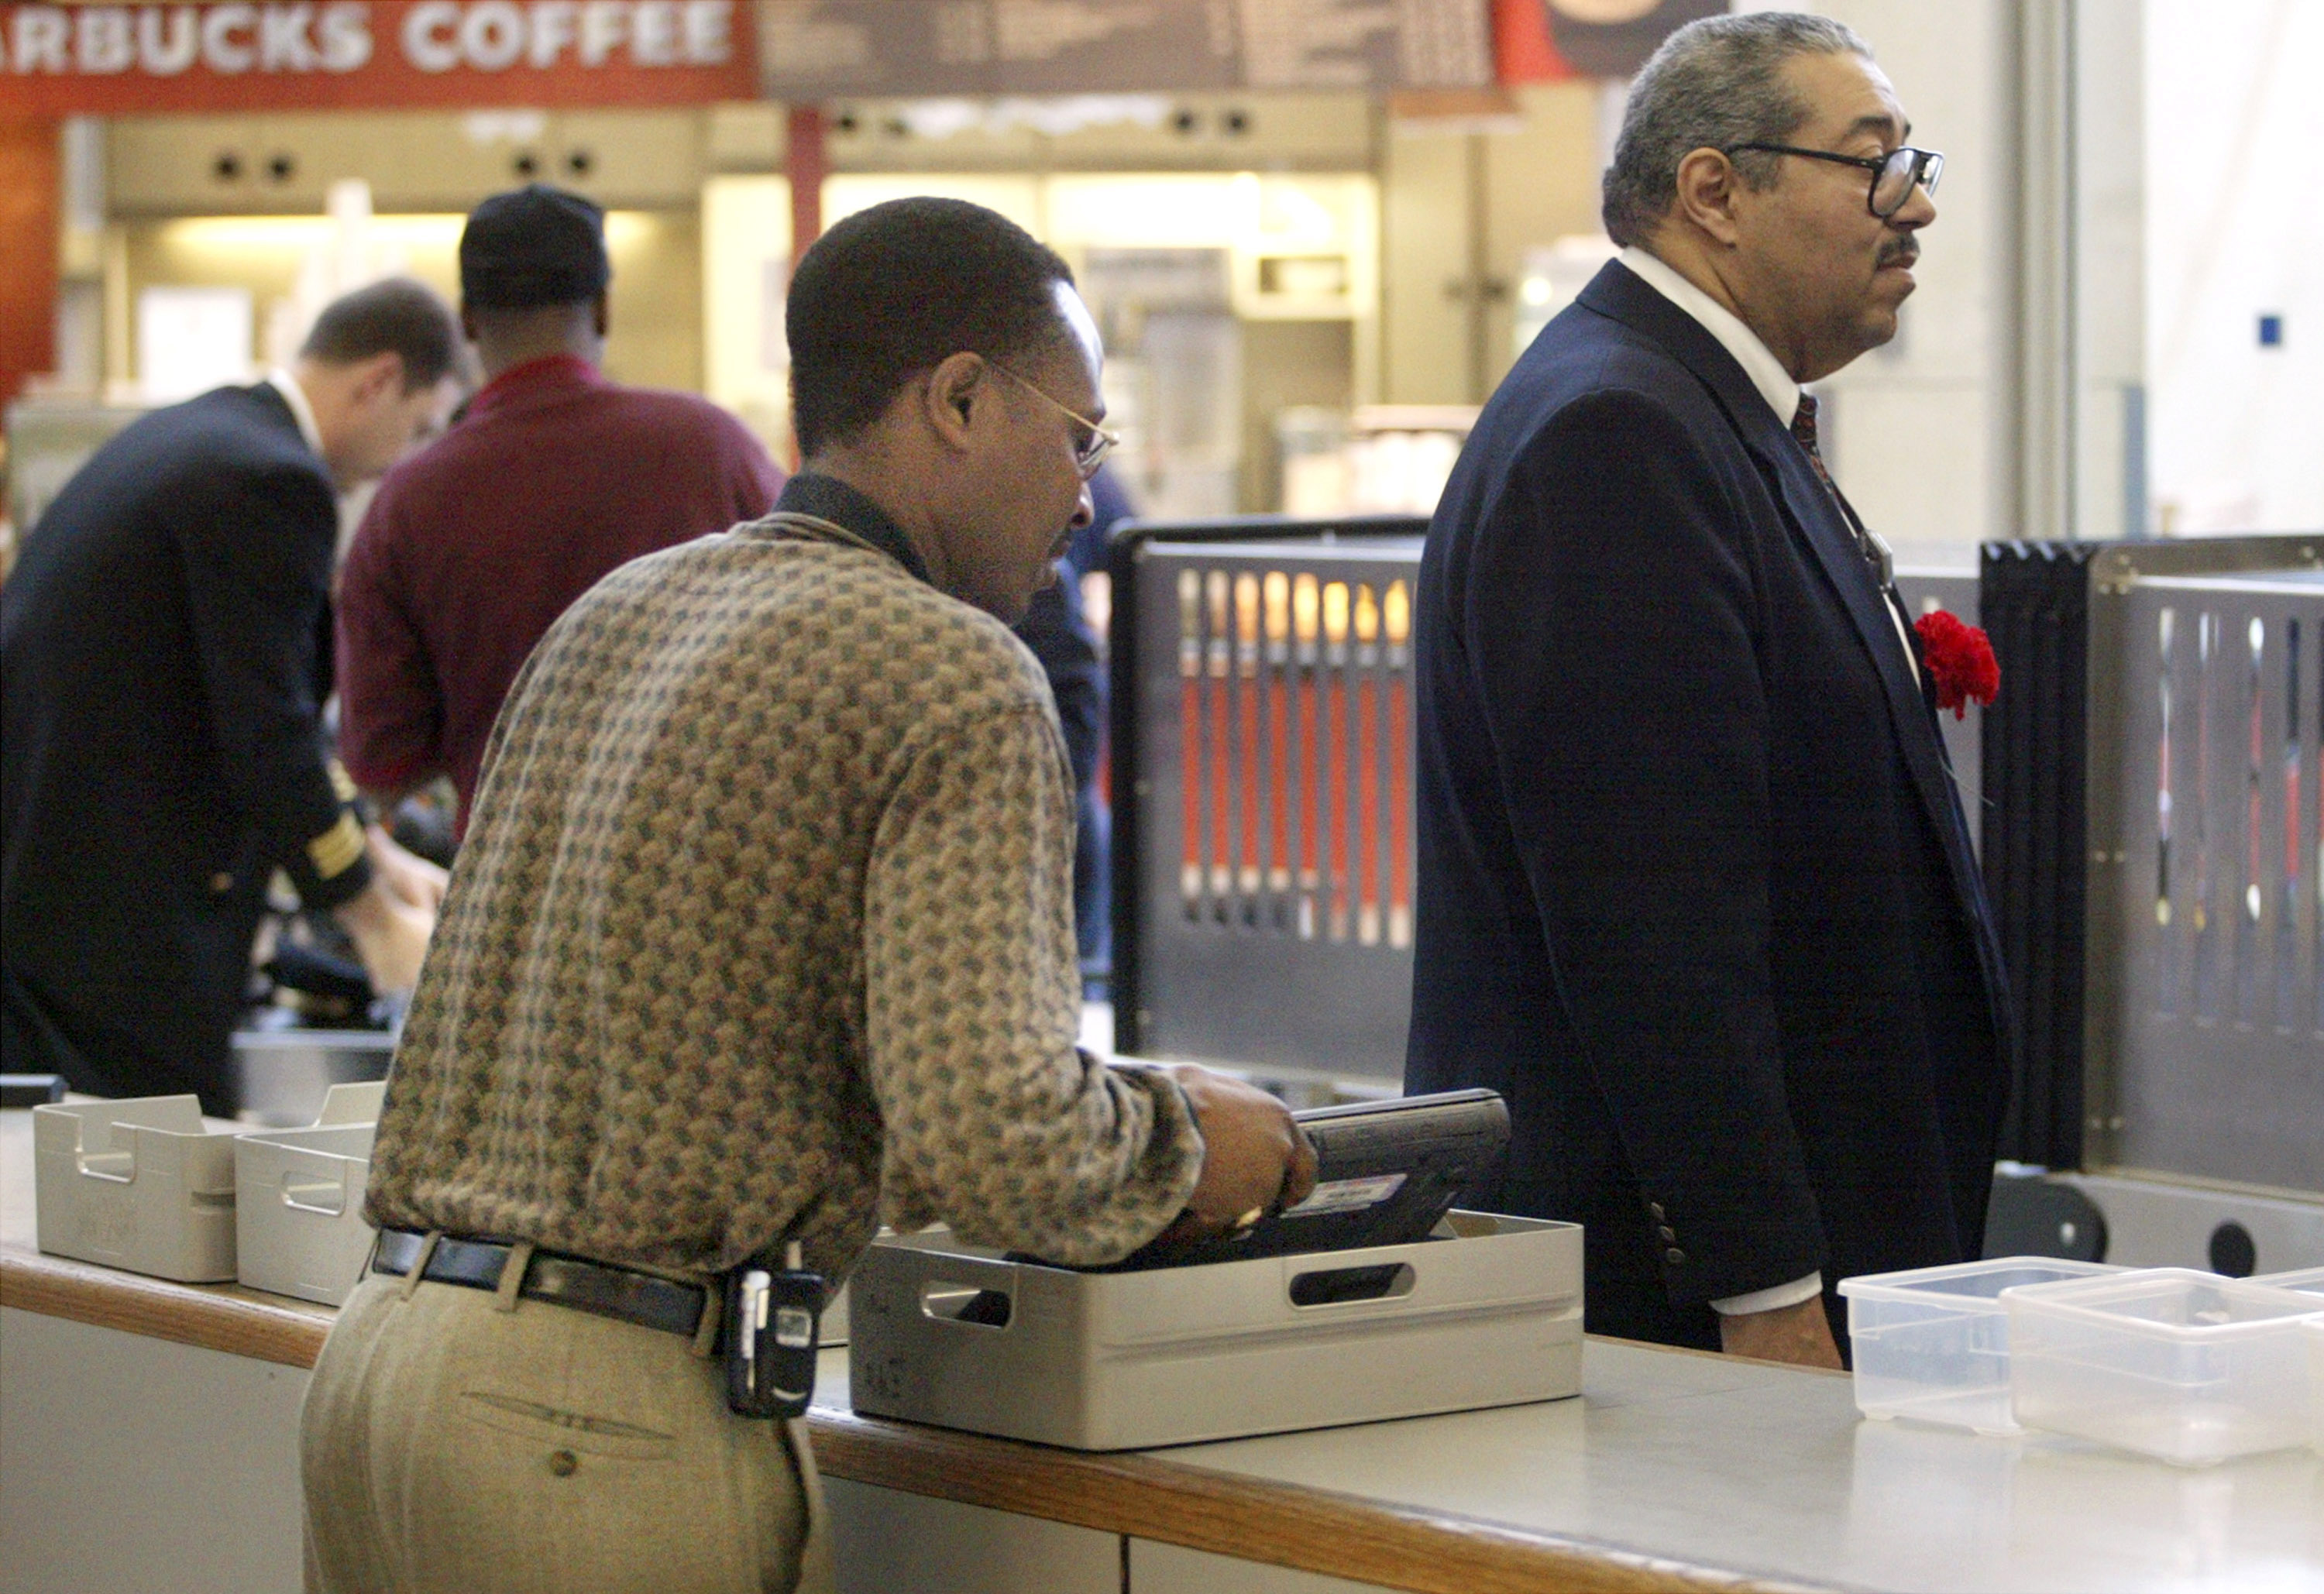 Fliers Lose Laptops at Airport Checkpoints